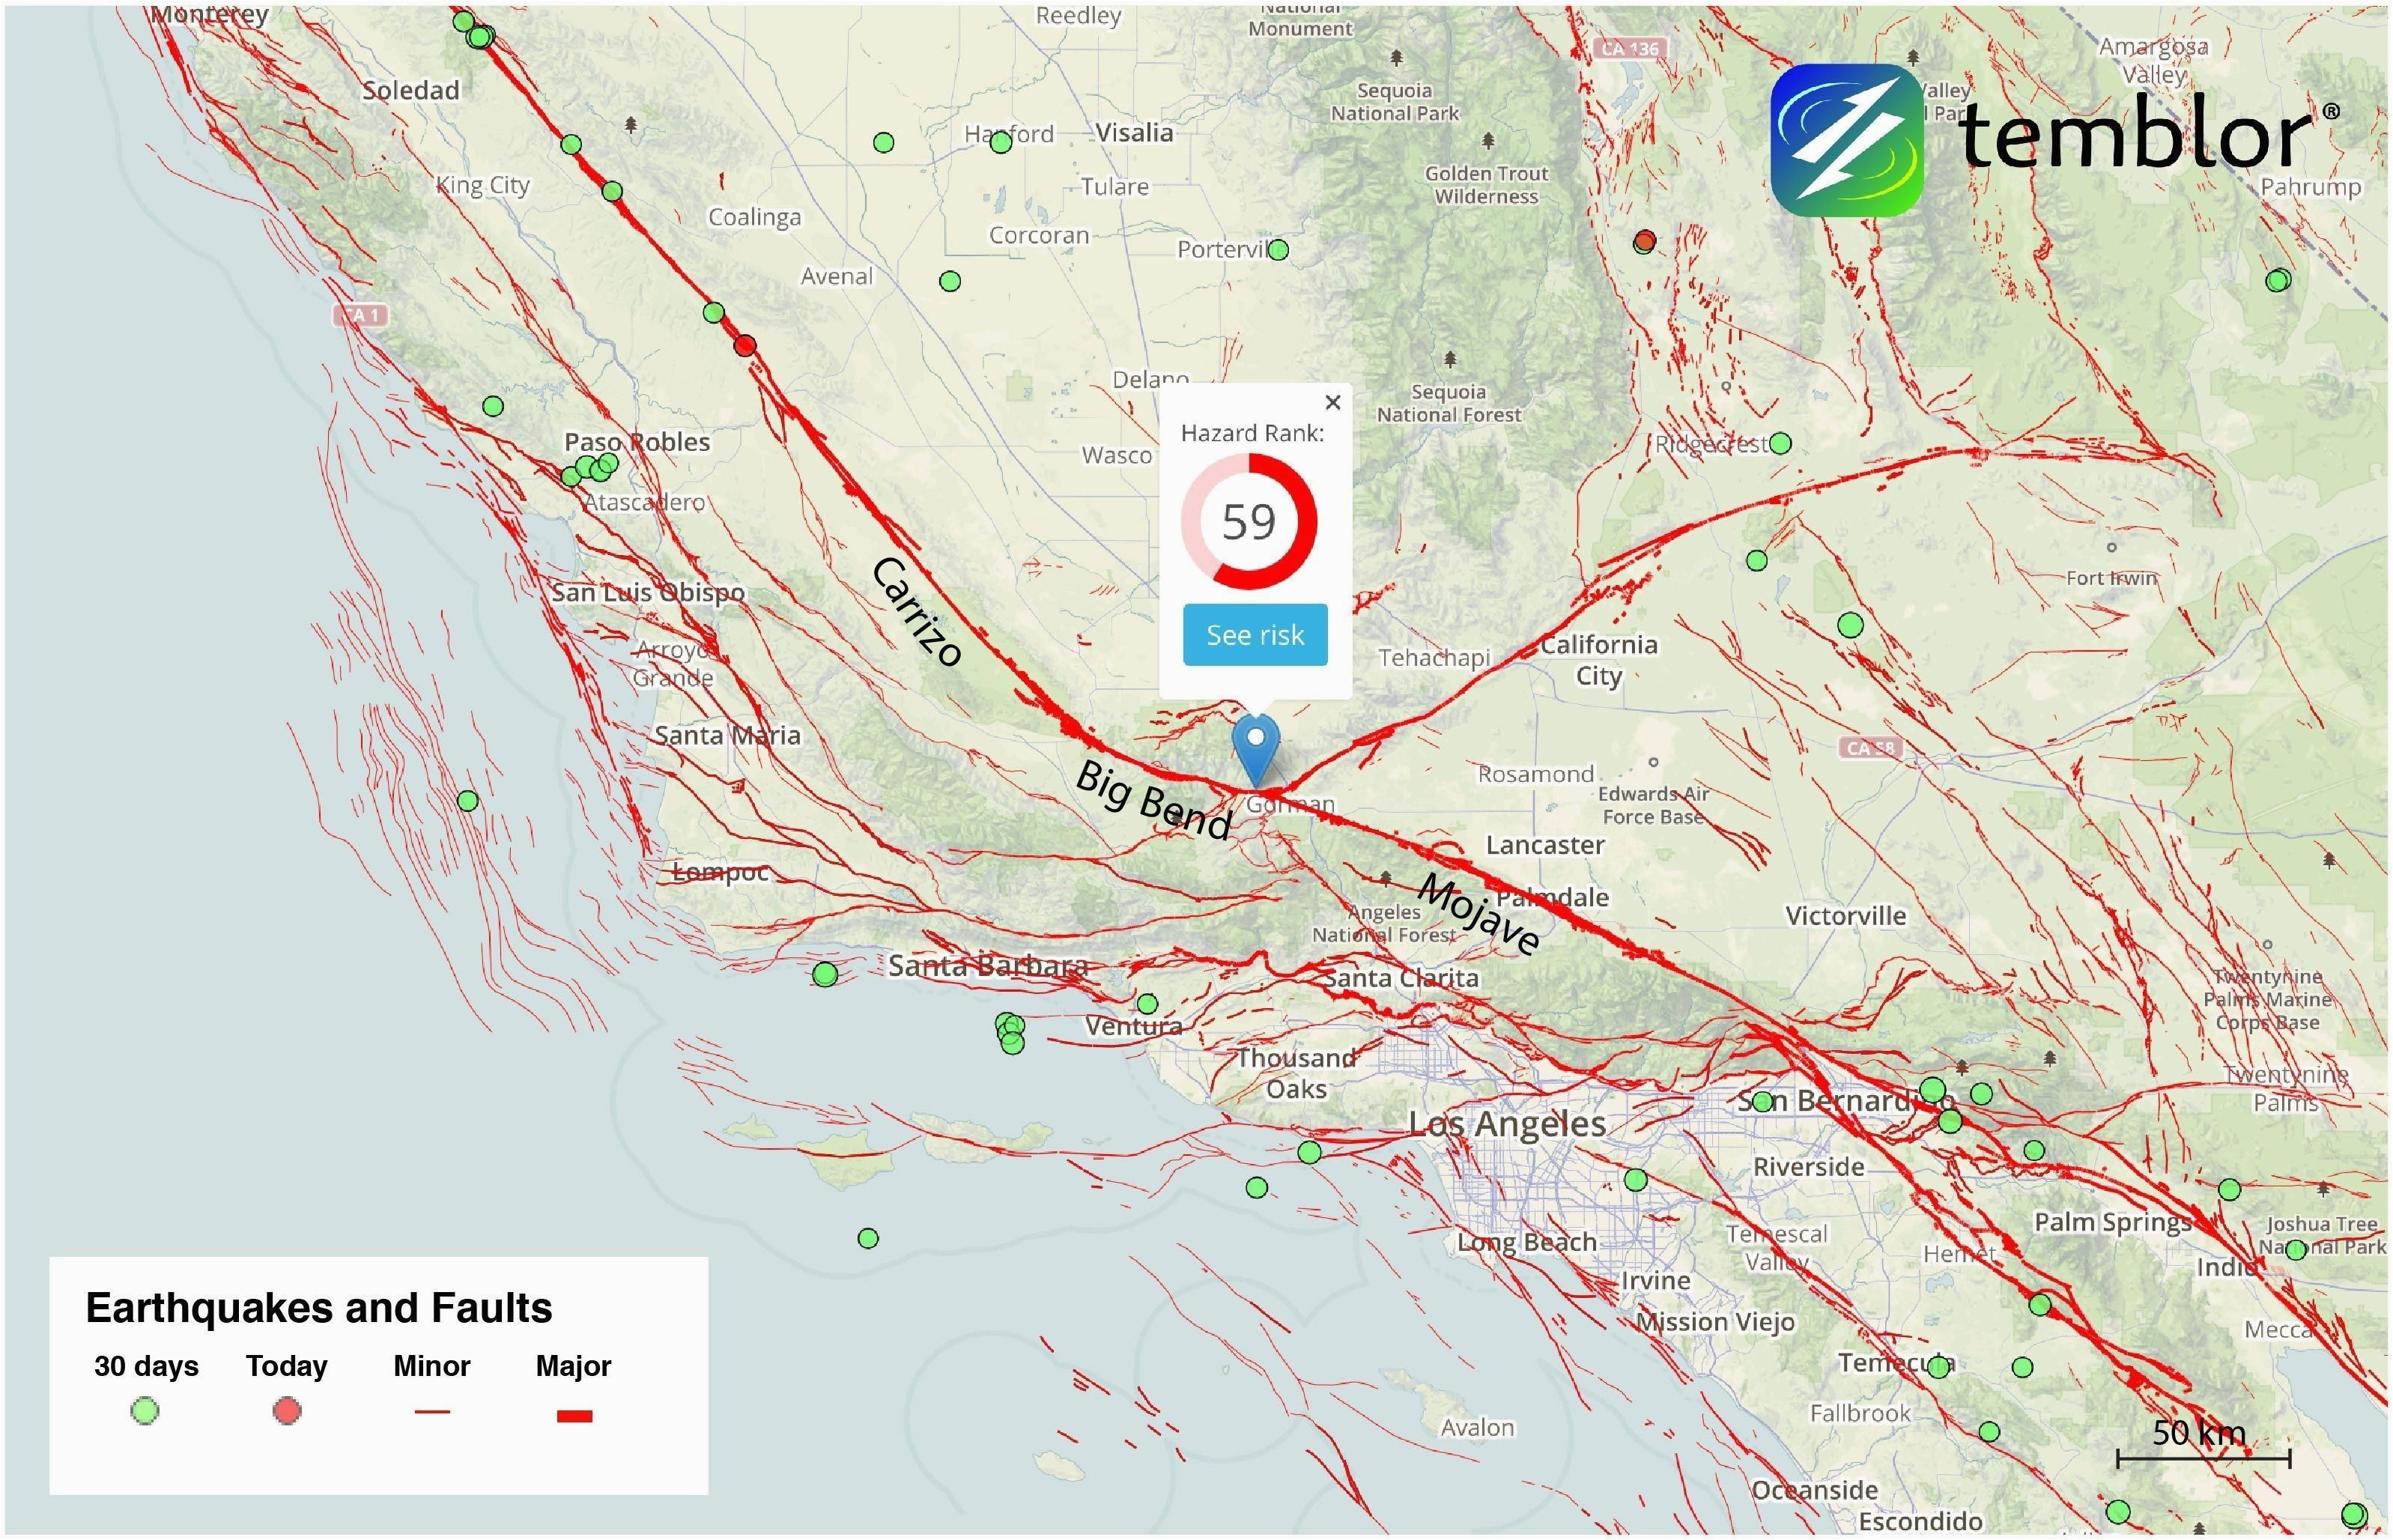 united states fault line map inspirationa seismic zone map the